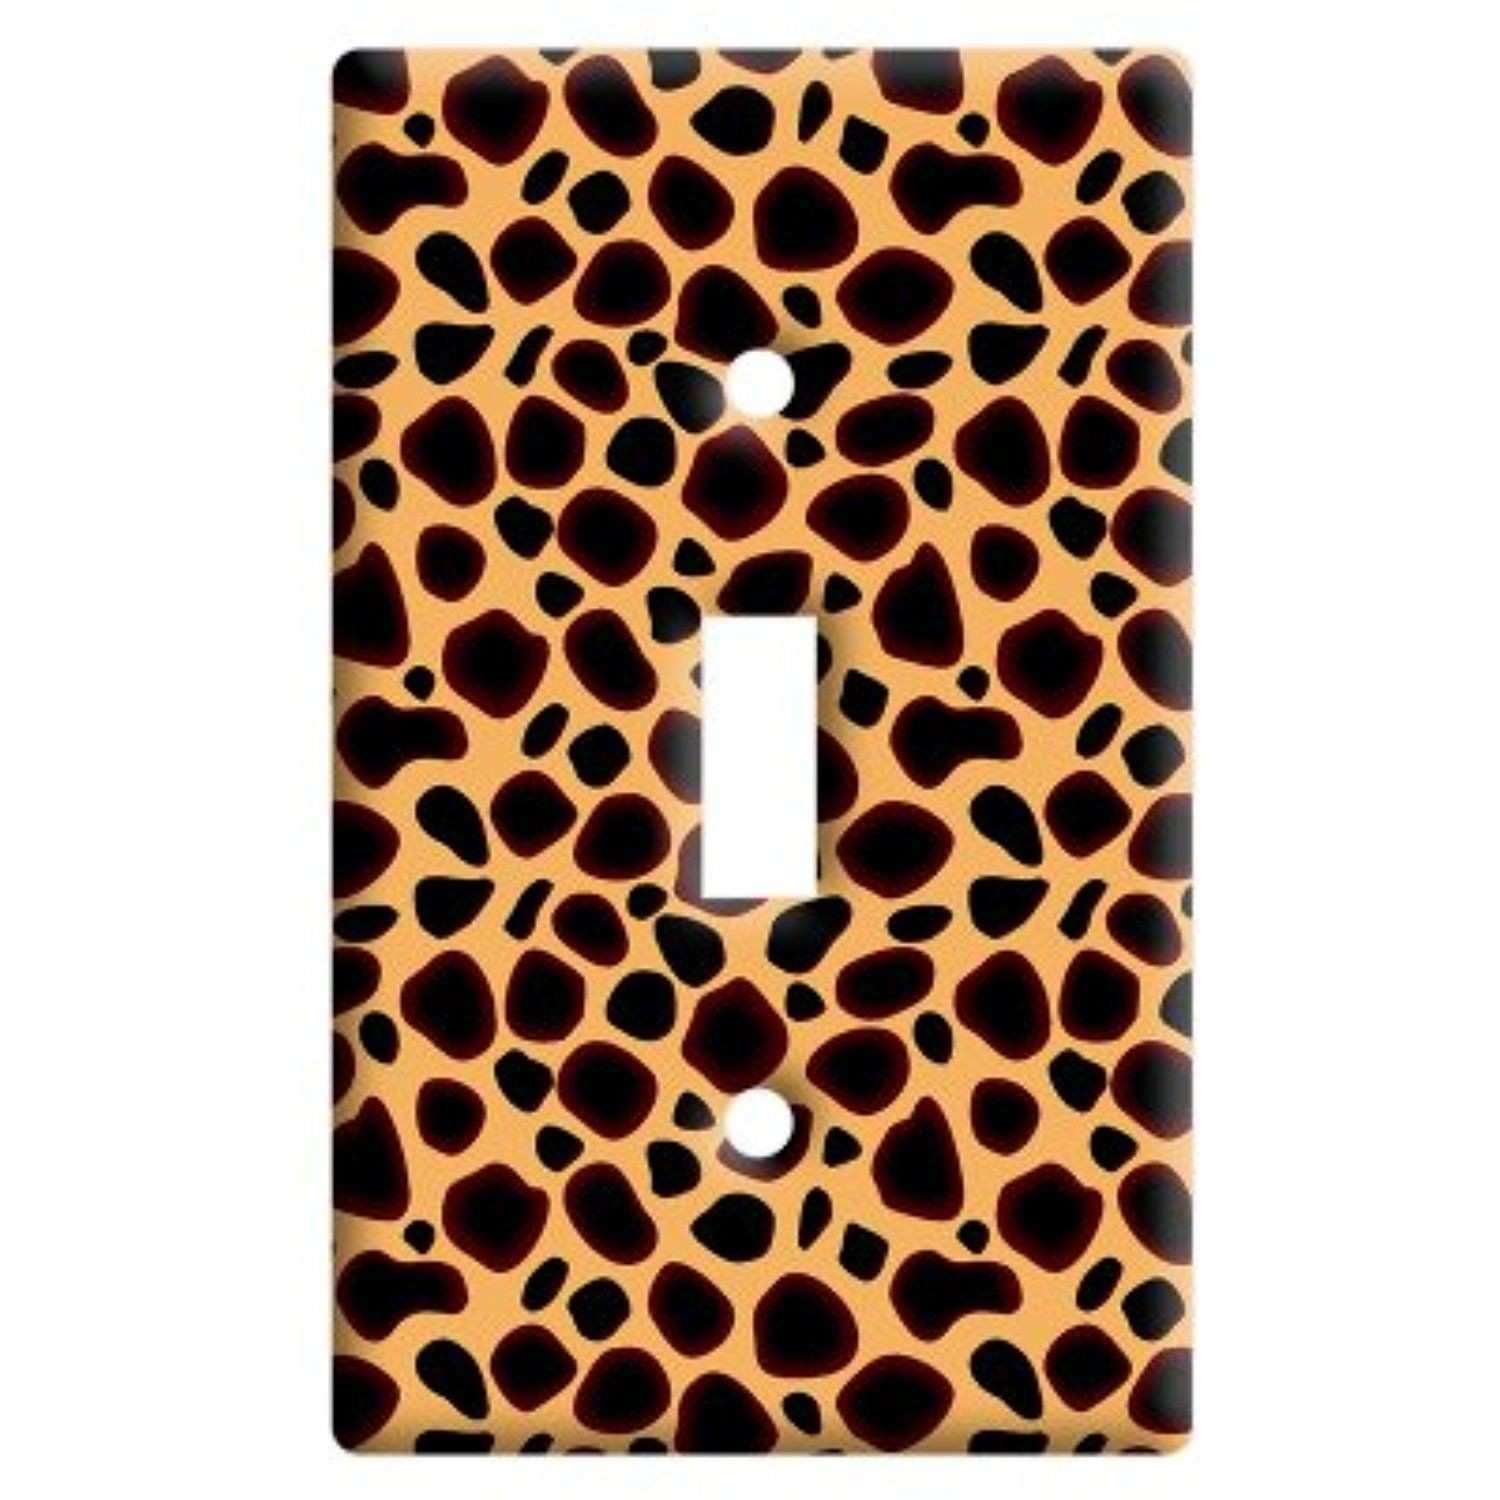 Cheetah Print Plastic Wall Decor Toggle Light Switch Plate Cover